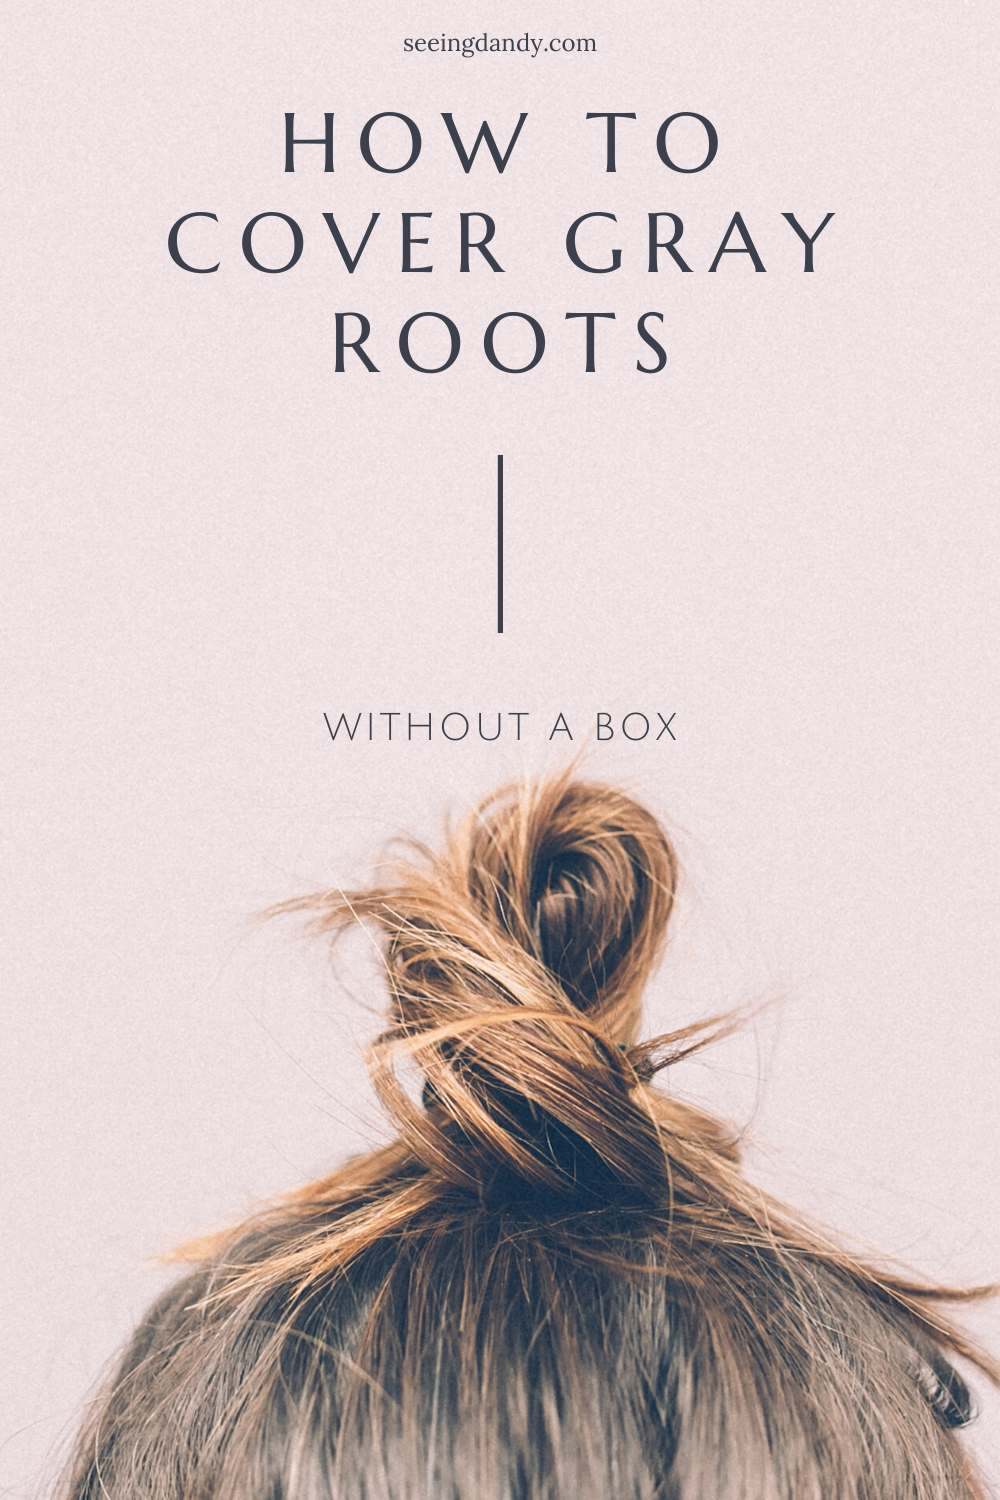 How to cover gray roots